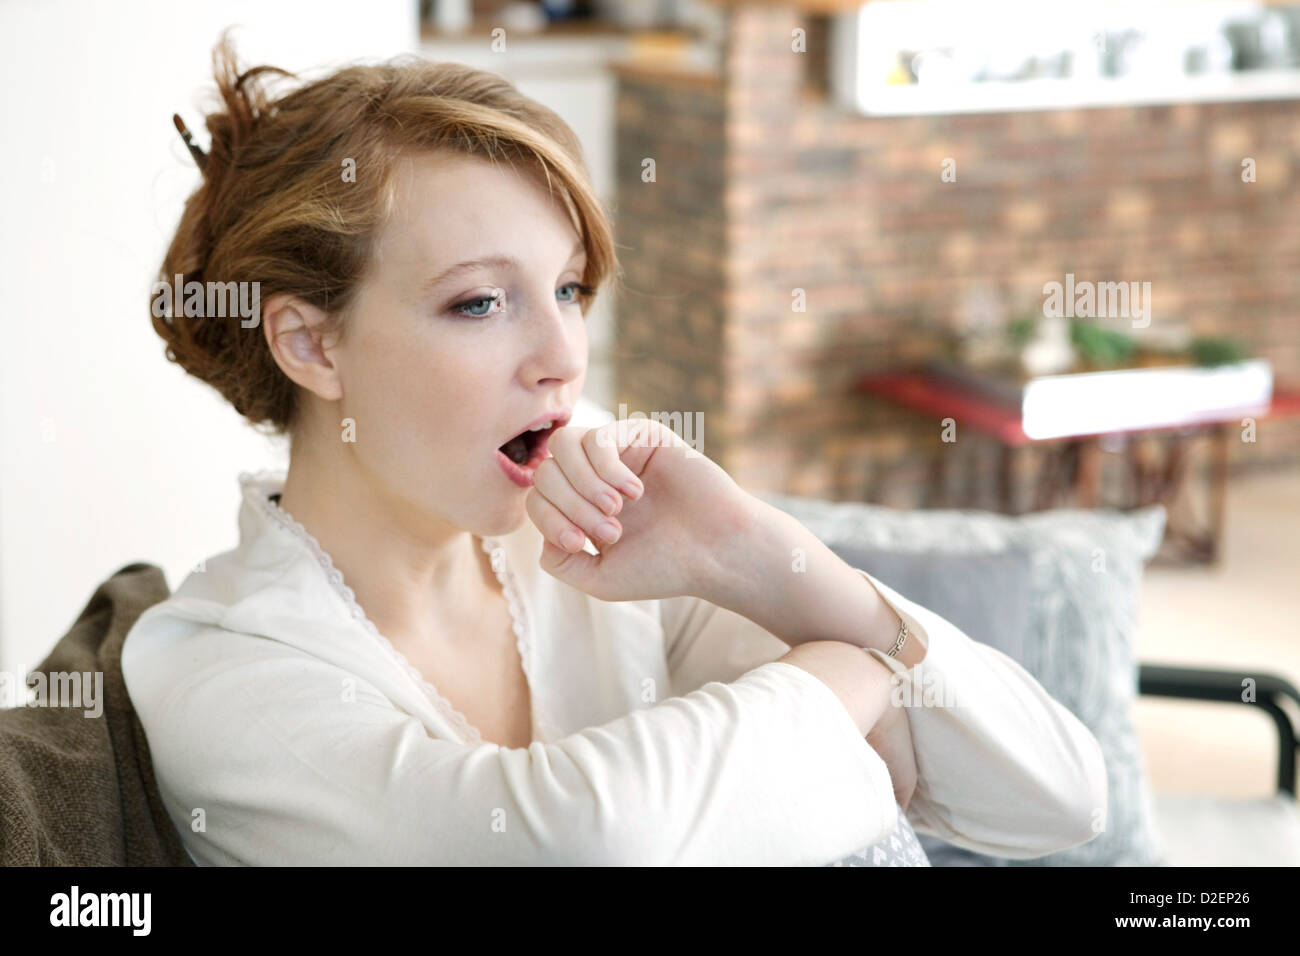 YAWNING WOMAN - Stock Image